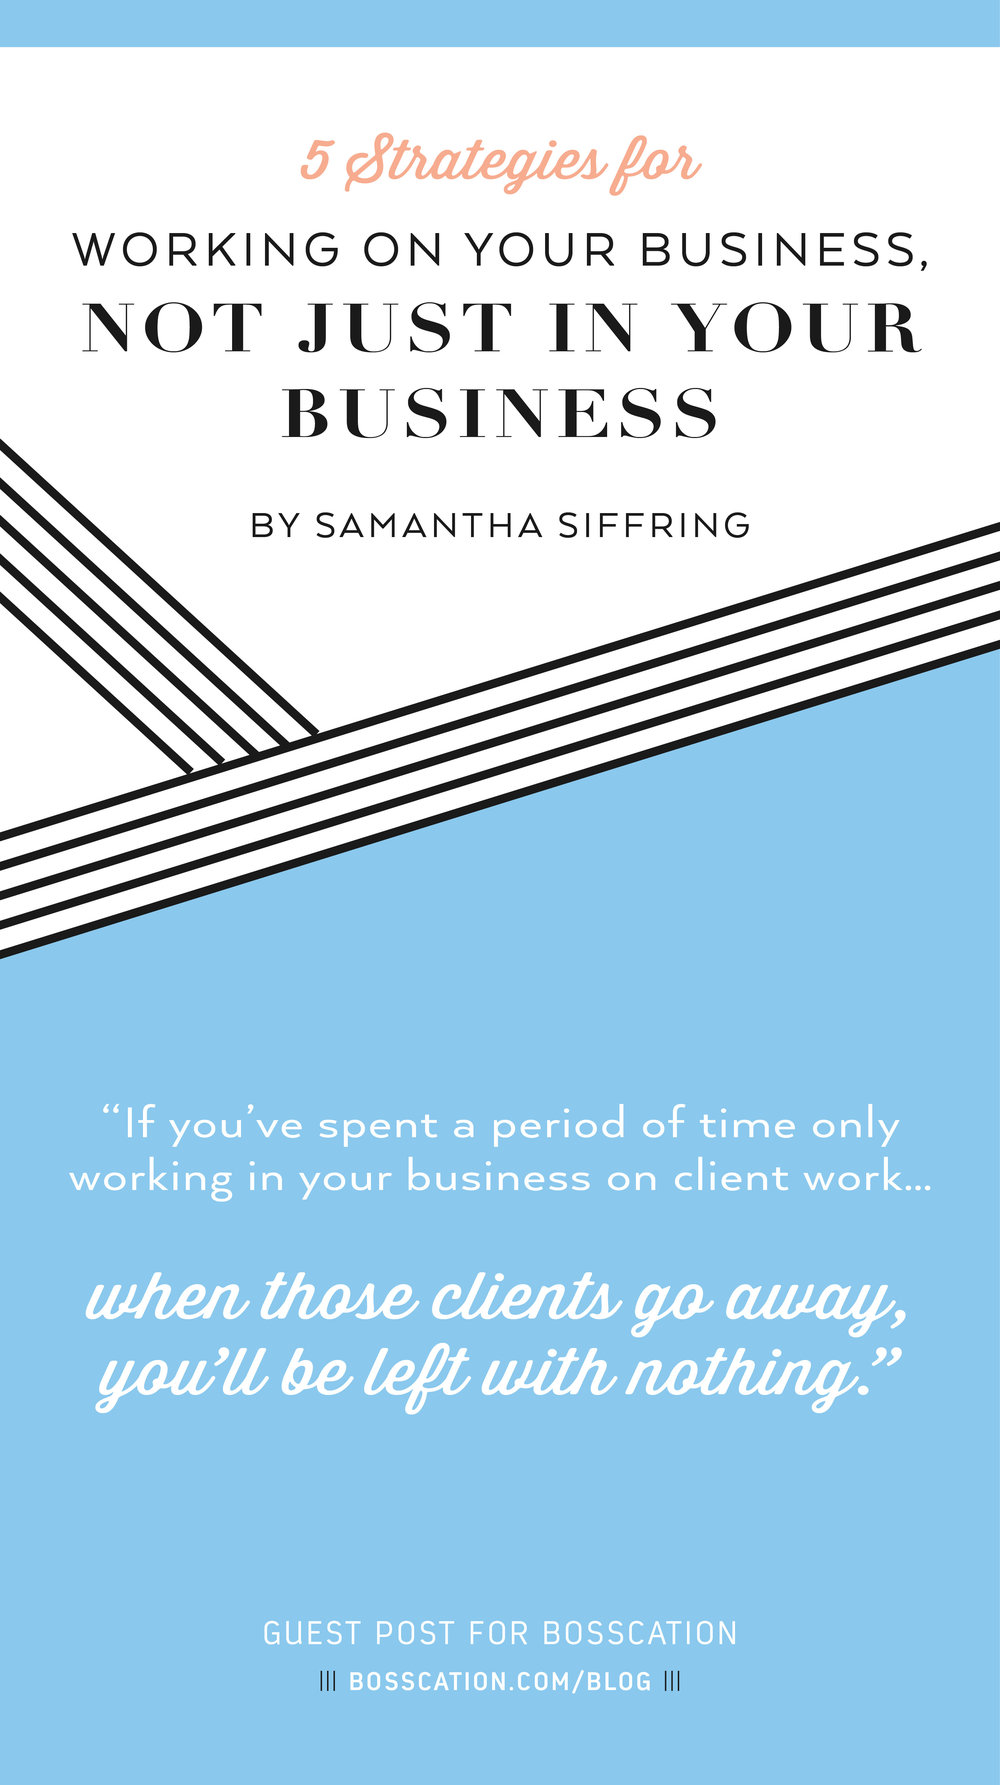 Don't get stuck working IN your business, caught up with busywork and client projects, rather than setting yourself up for long-term success.